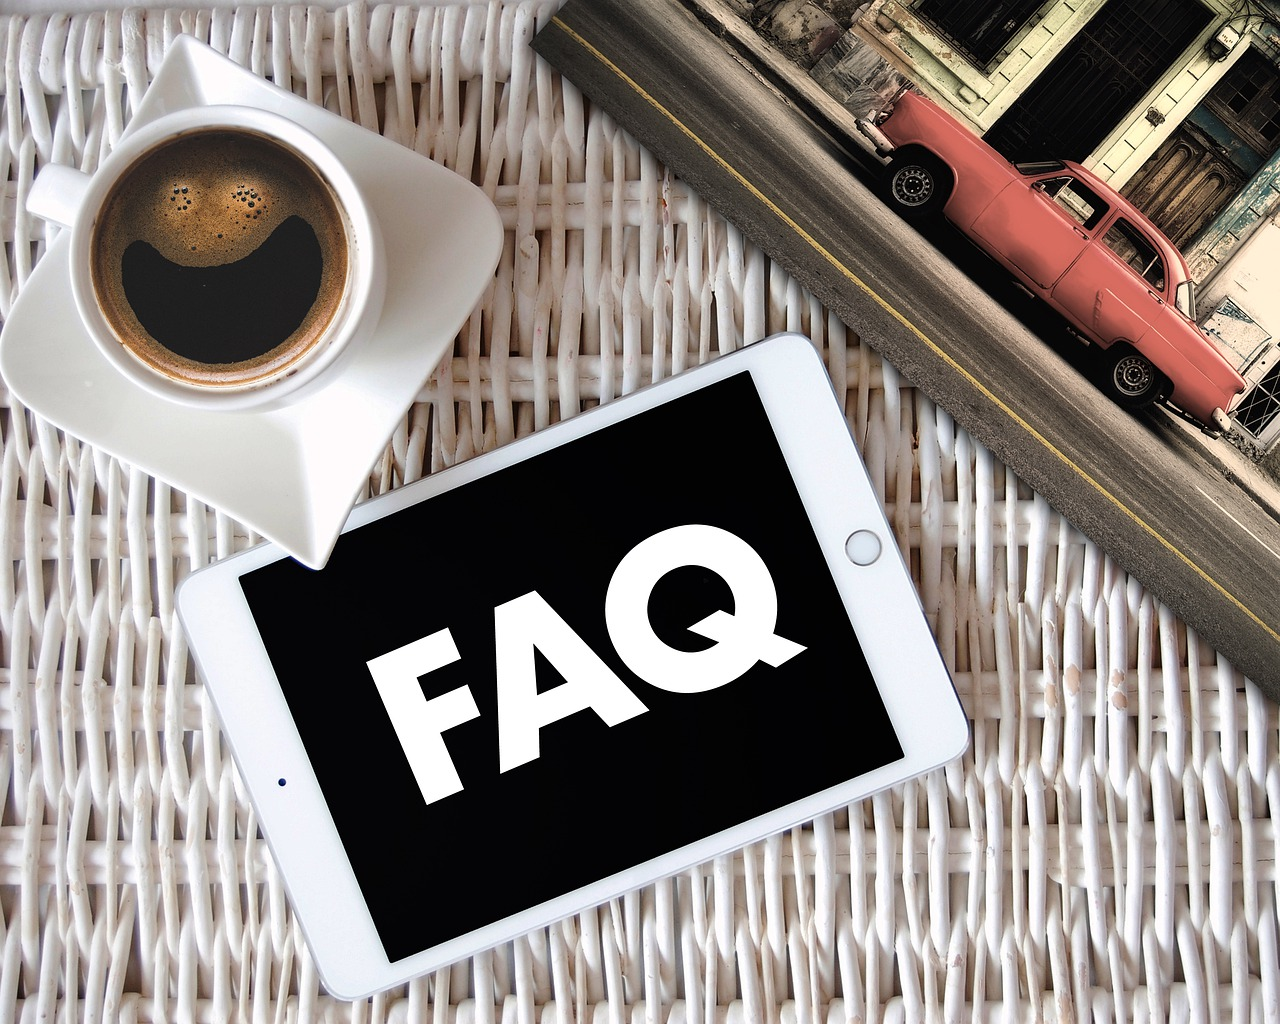 tablet-frequently-asked-questions-faqs-5550695